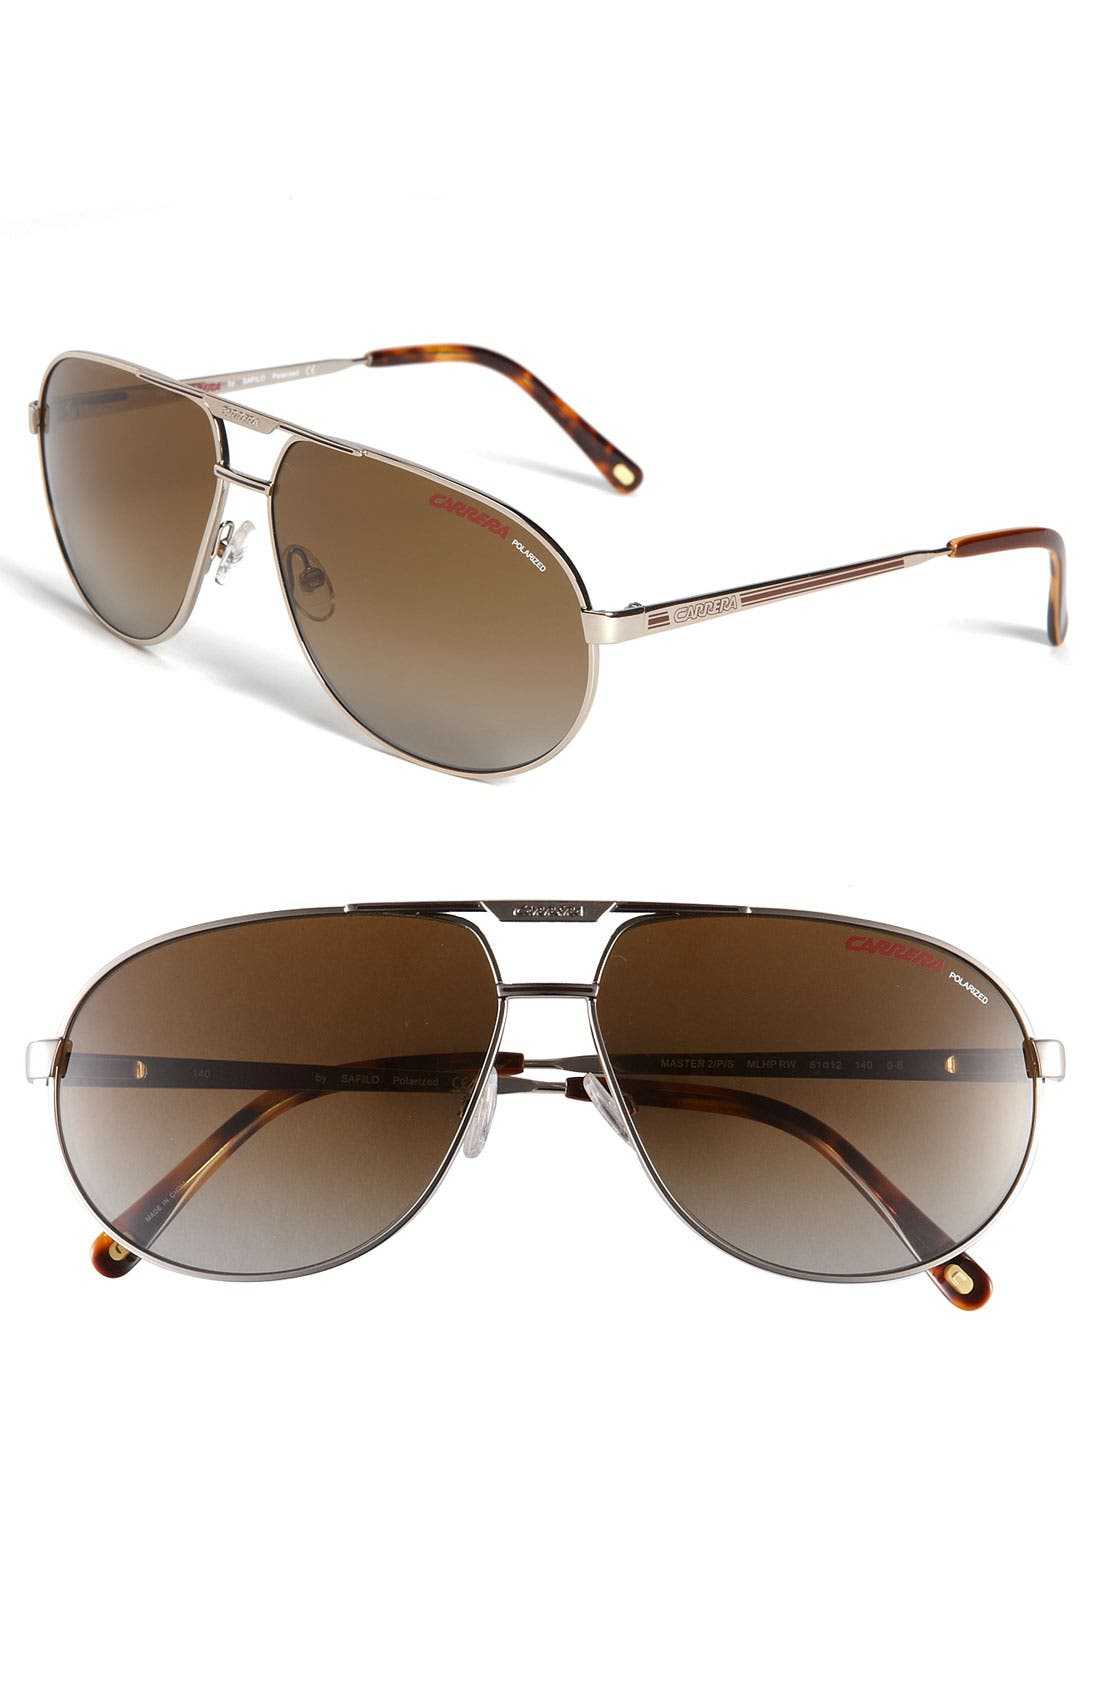 Alternate Image 1 Selected - Carrera Eyewear 'Master 2' 61mm Polarized Aviator Sunglasses